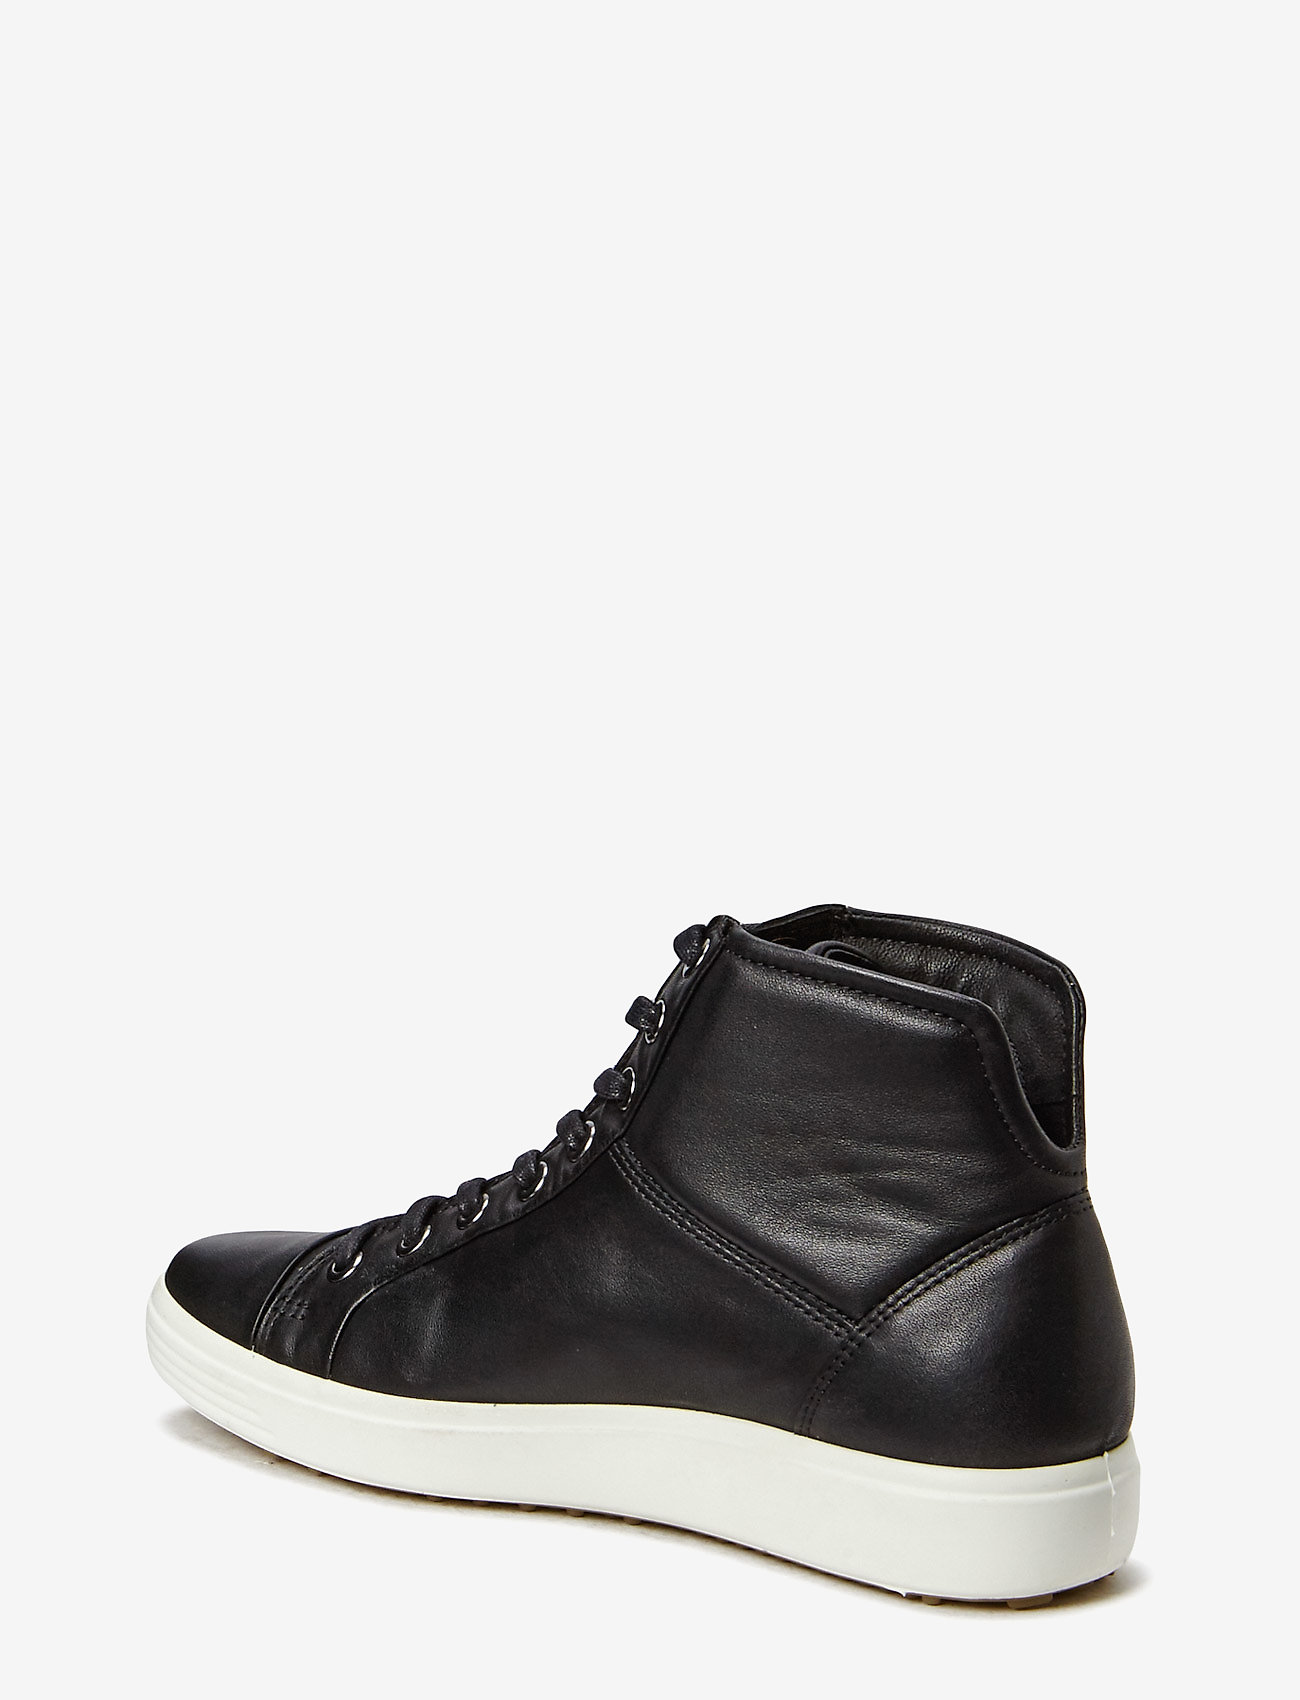 ECCO - SOFT 7 W - high top sneakers - black - 1